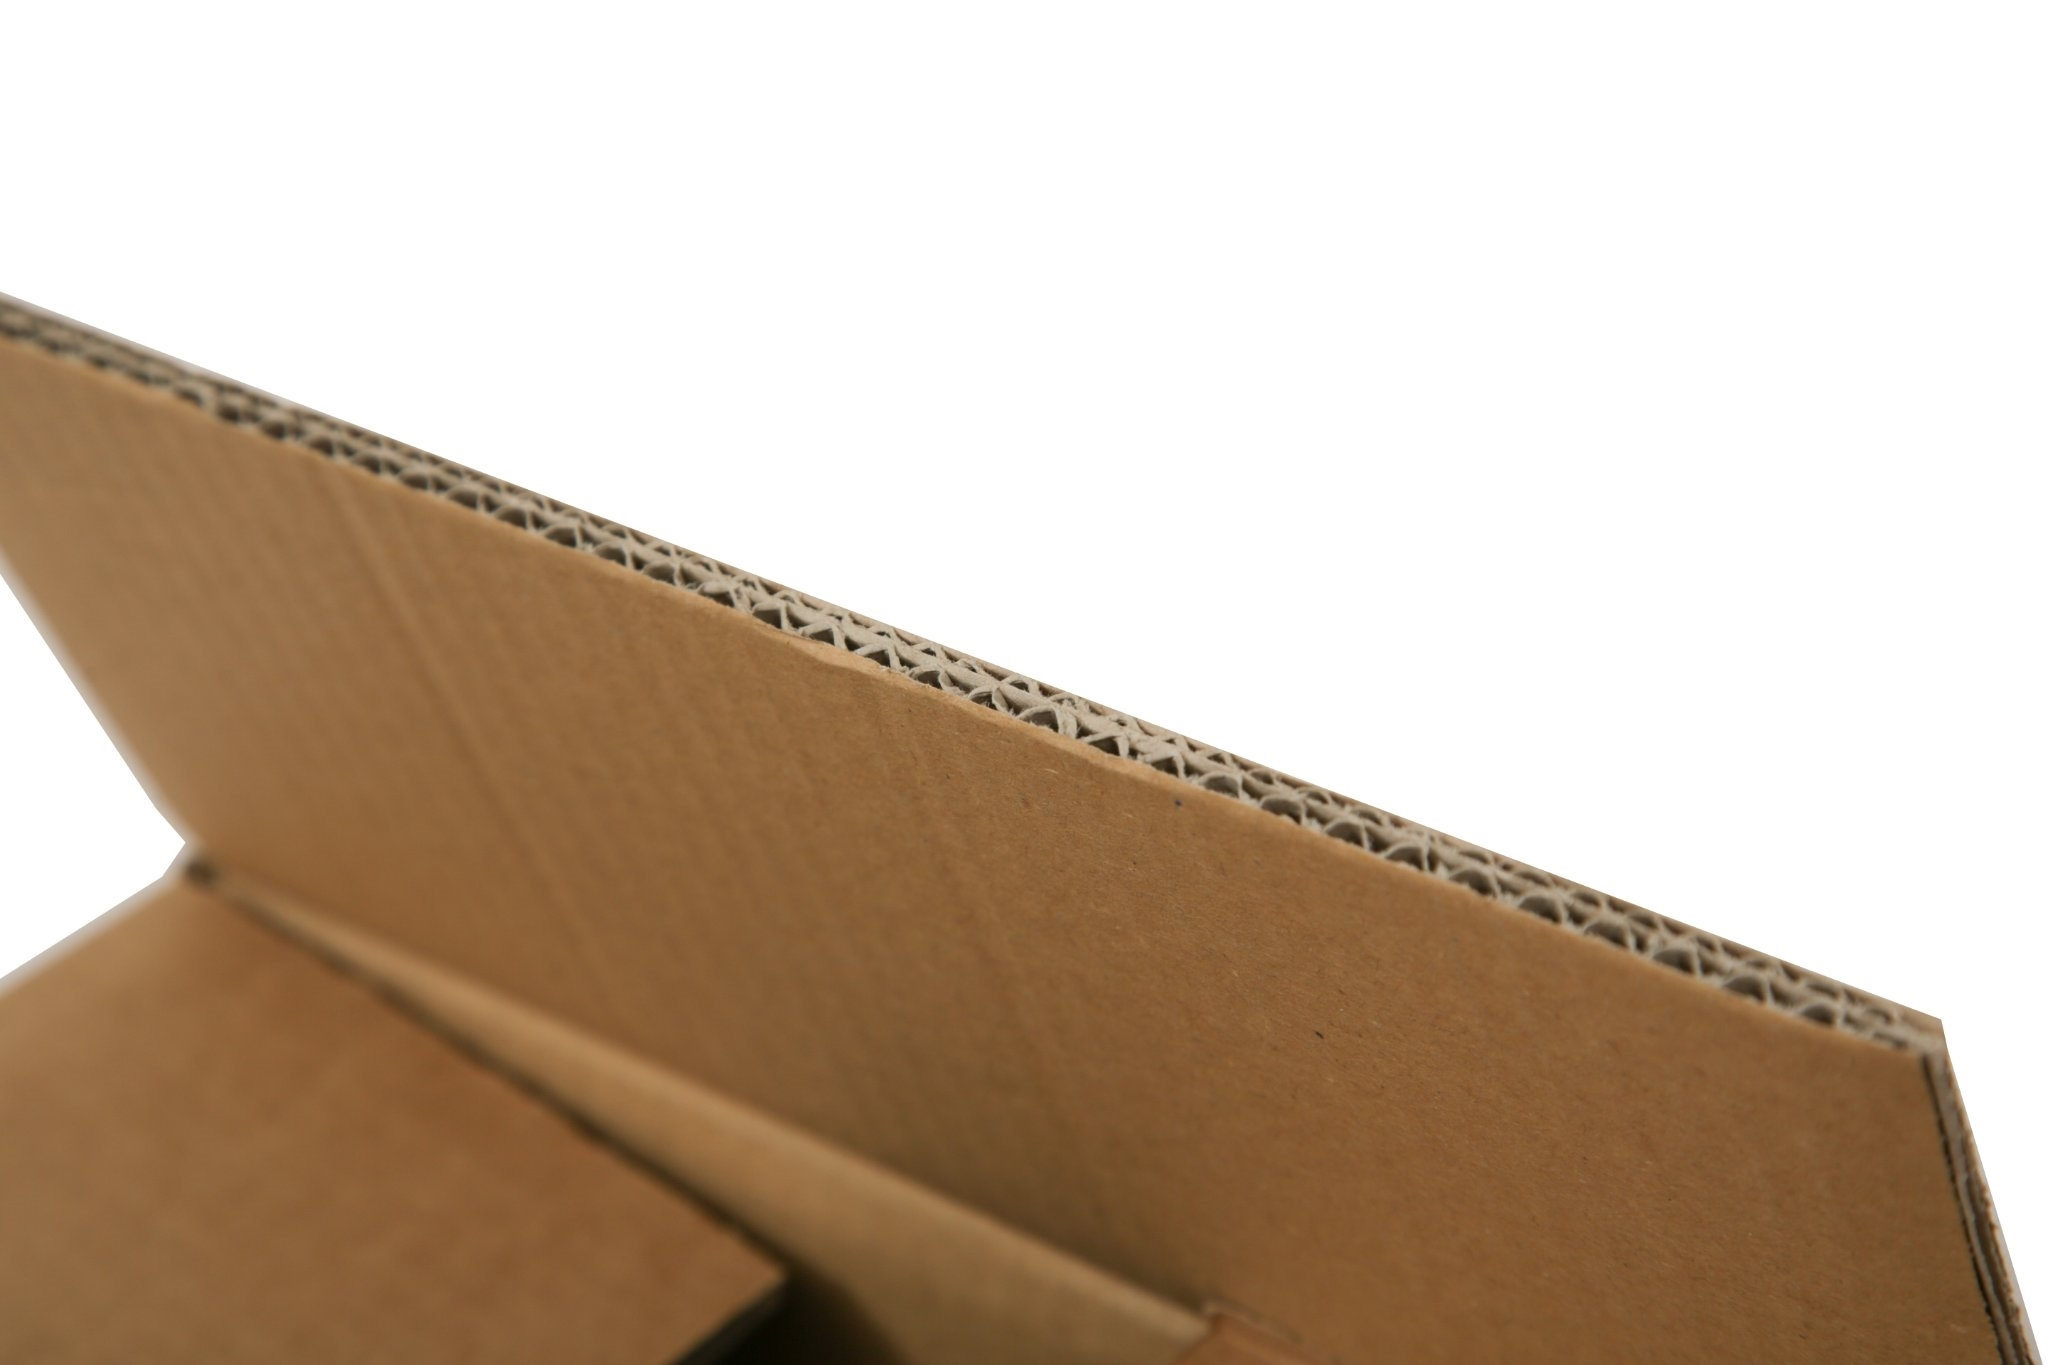 381 x 254 x 254mm Double Wall Cardboard Boxes - 5